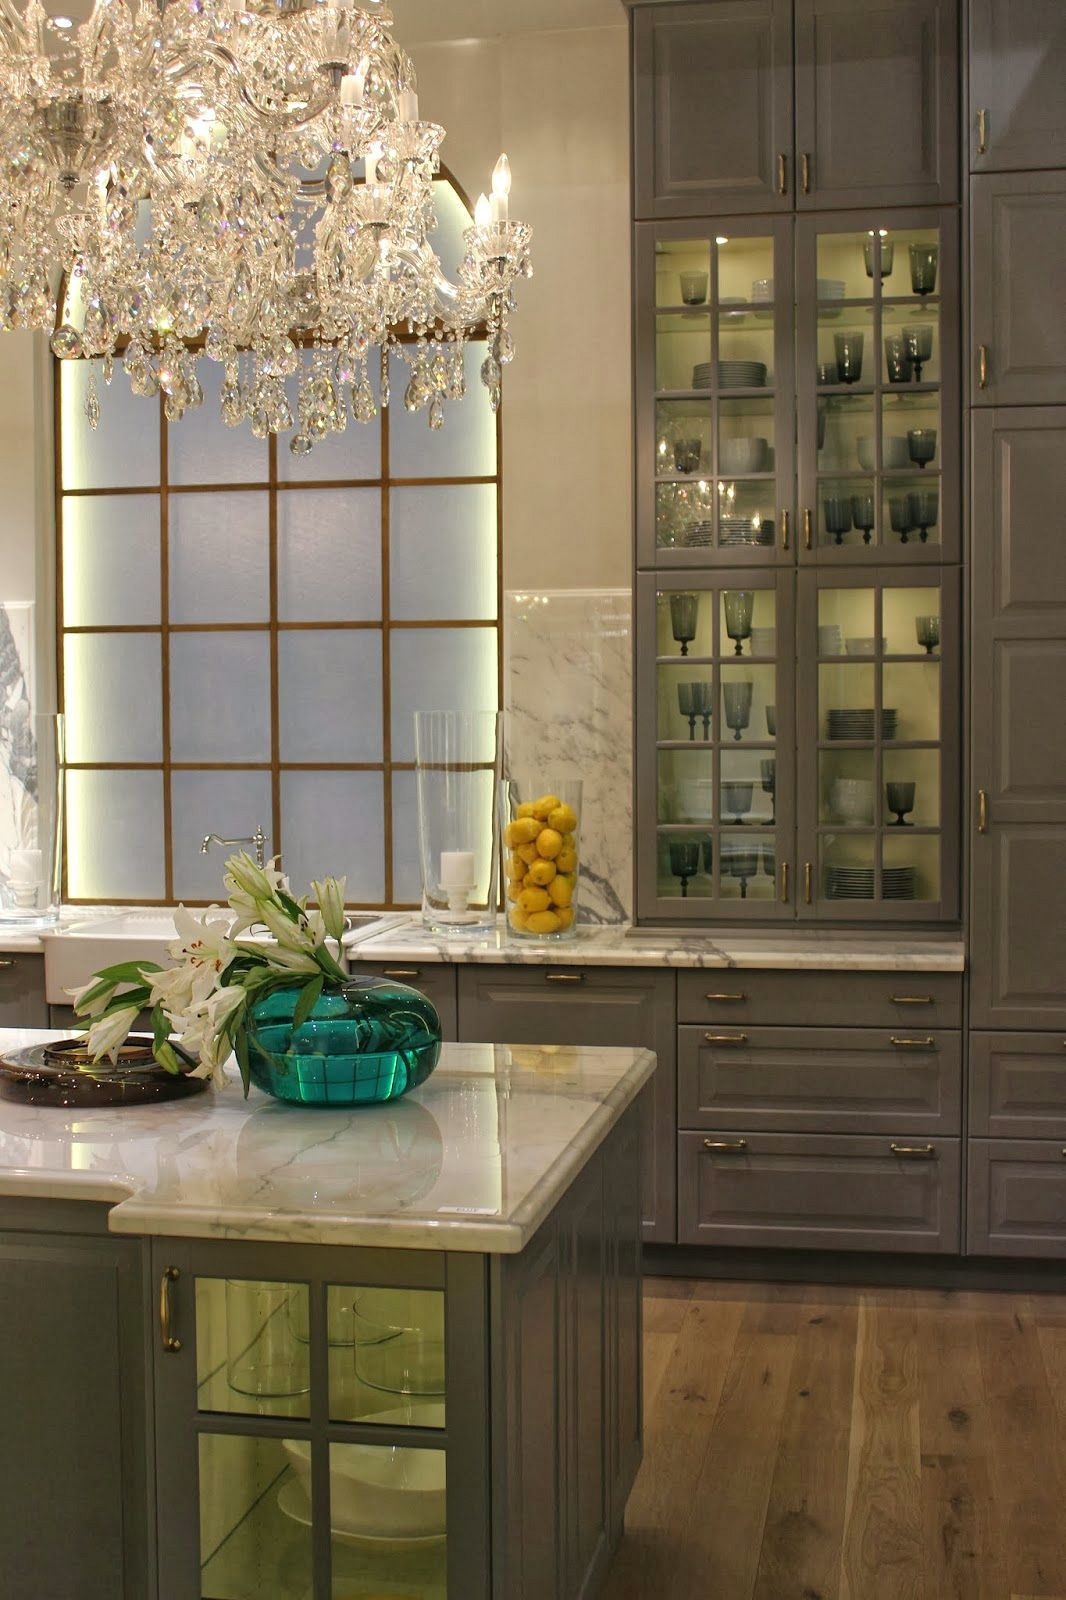 Top 25 Must See Kitchens on Pinterest | Pinterest